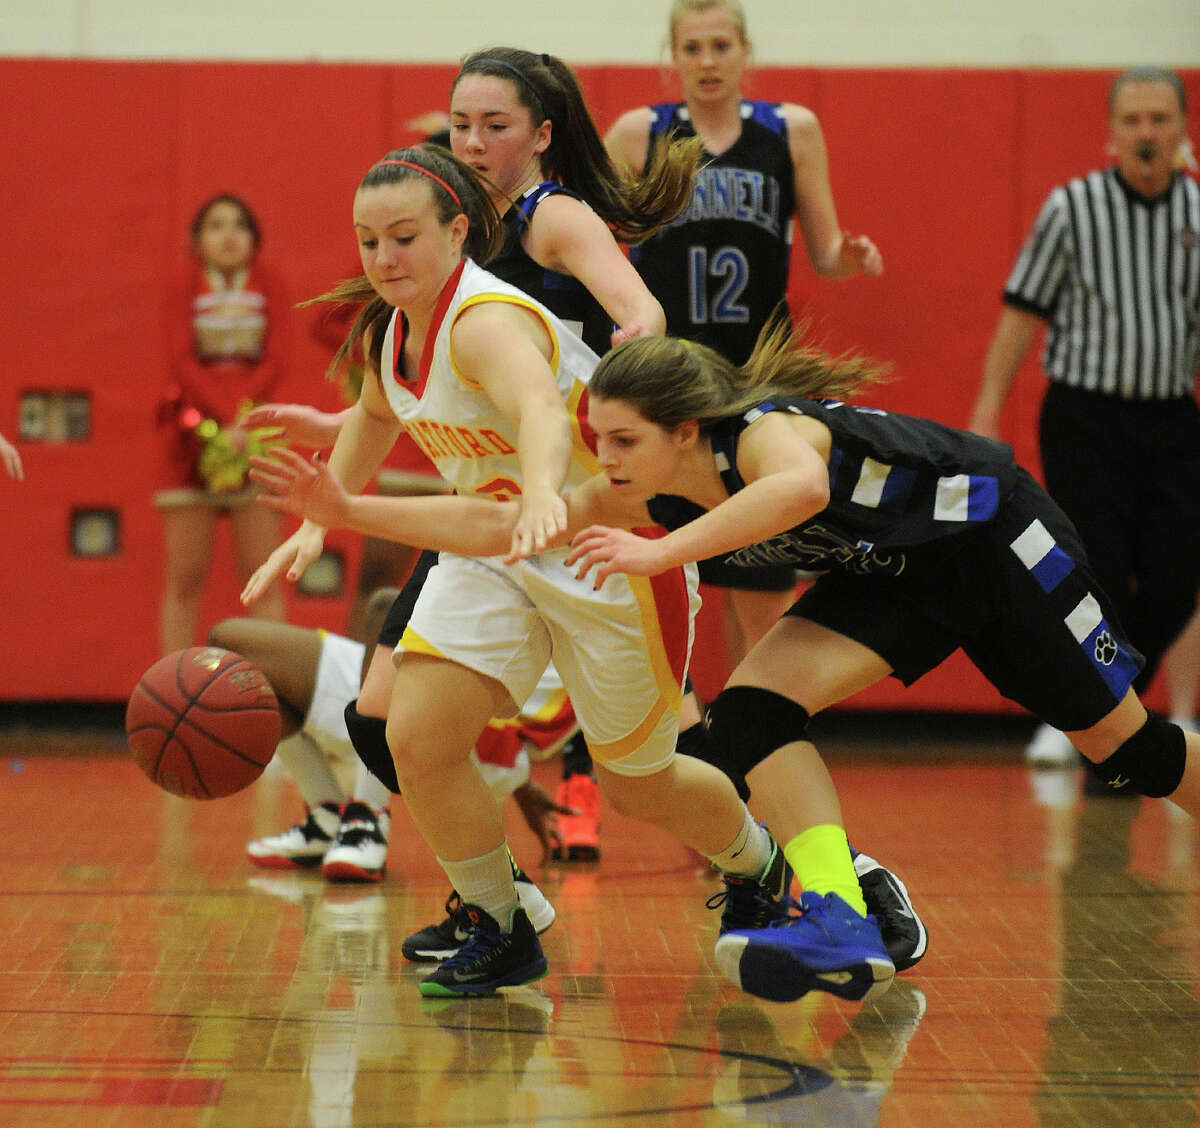 Stratford's Rebecca McMahon, left, chases down a loose ball with Bunnell's Caitlin Carrafiello during their girls basketball matchup at Stratford High School in Stratford, Conn on Monday, January 13, 2014.